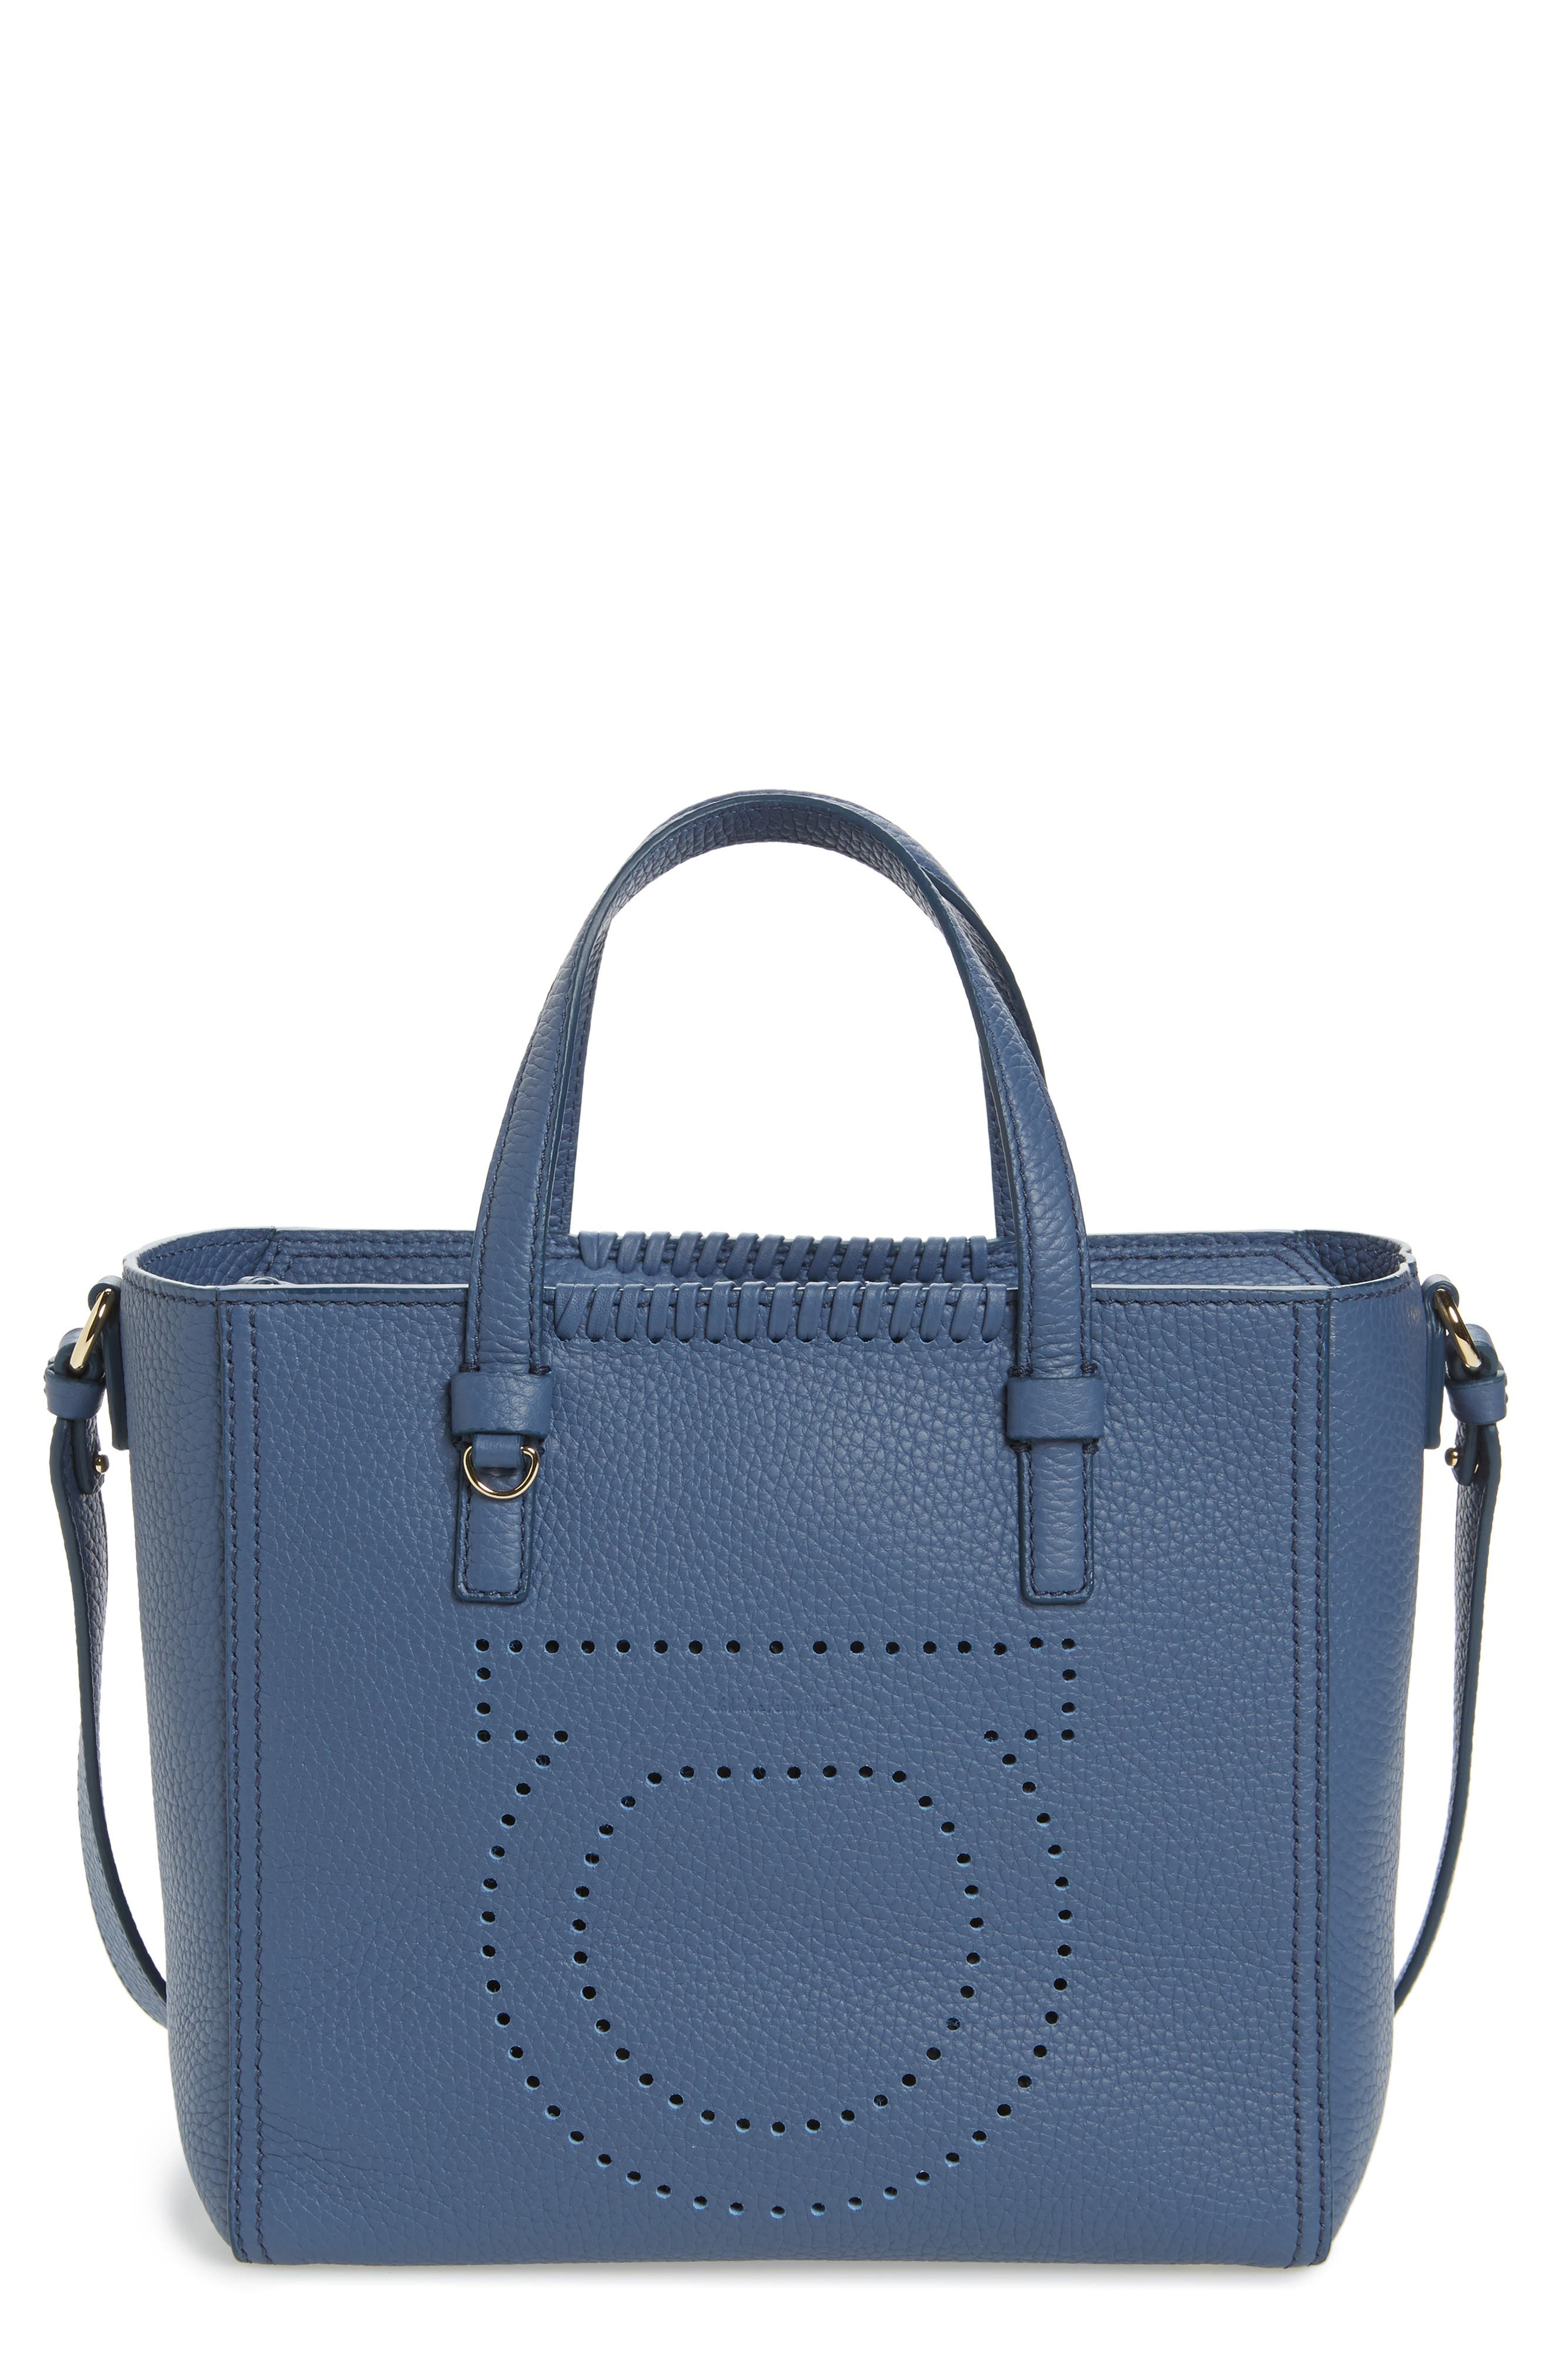 Small Pebbled Leather Tote,                             Main thumbnail 1, color,                             463